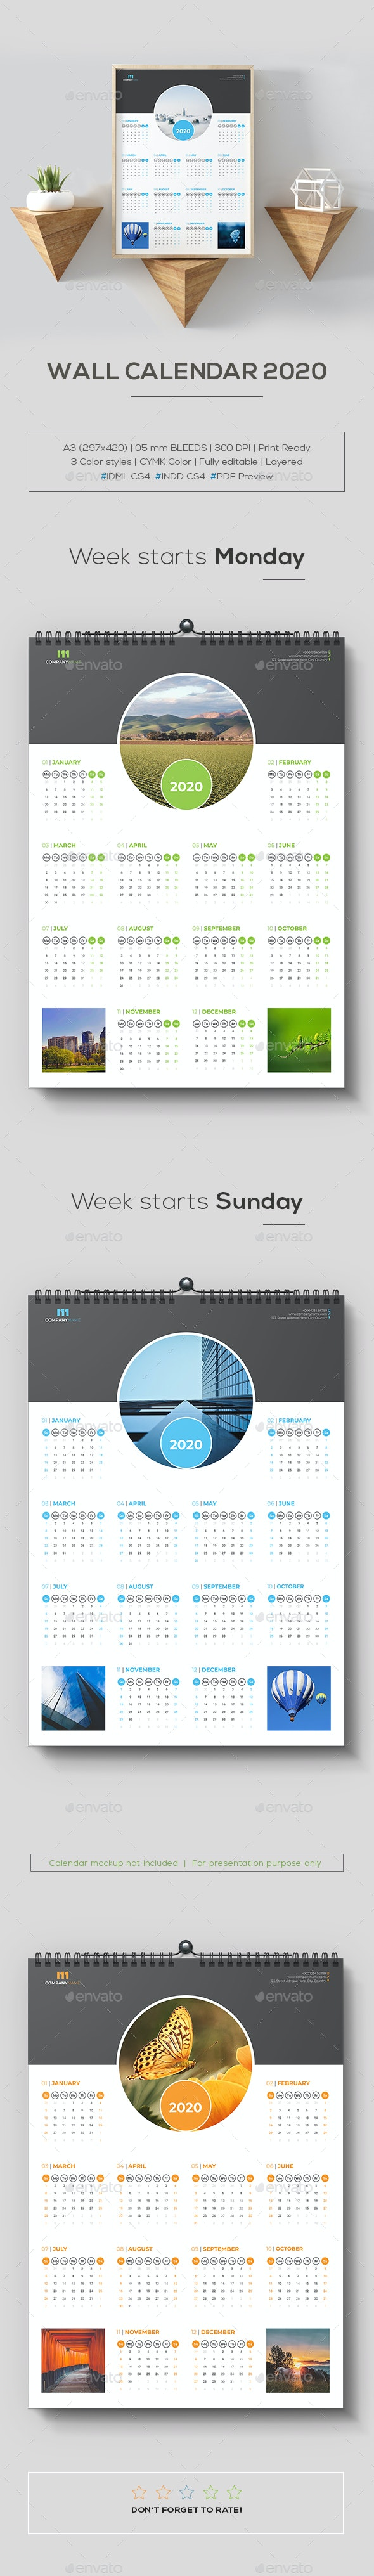 Wall Calendar 2020 - Calendars Stationery